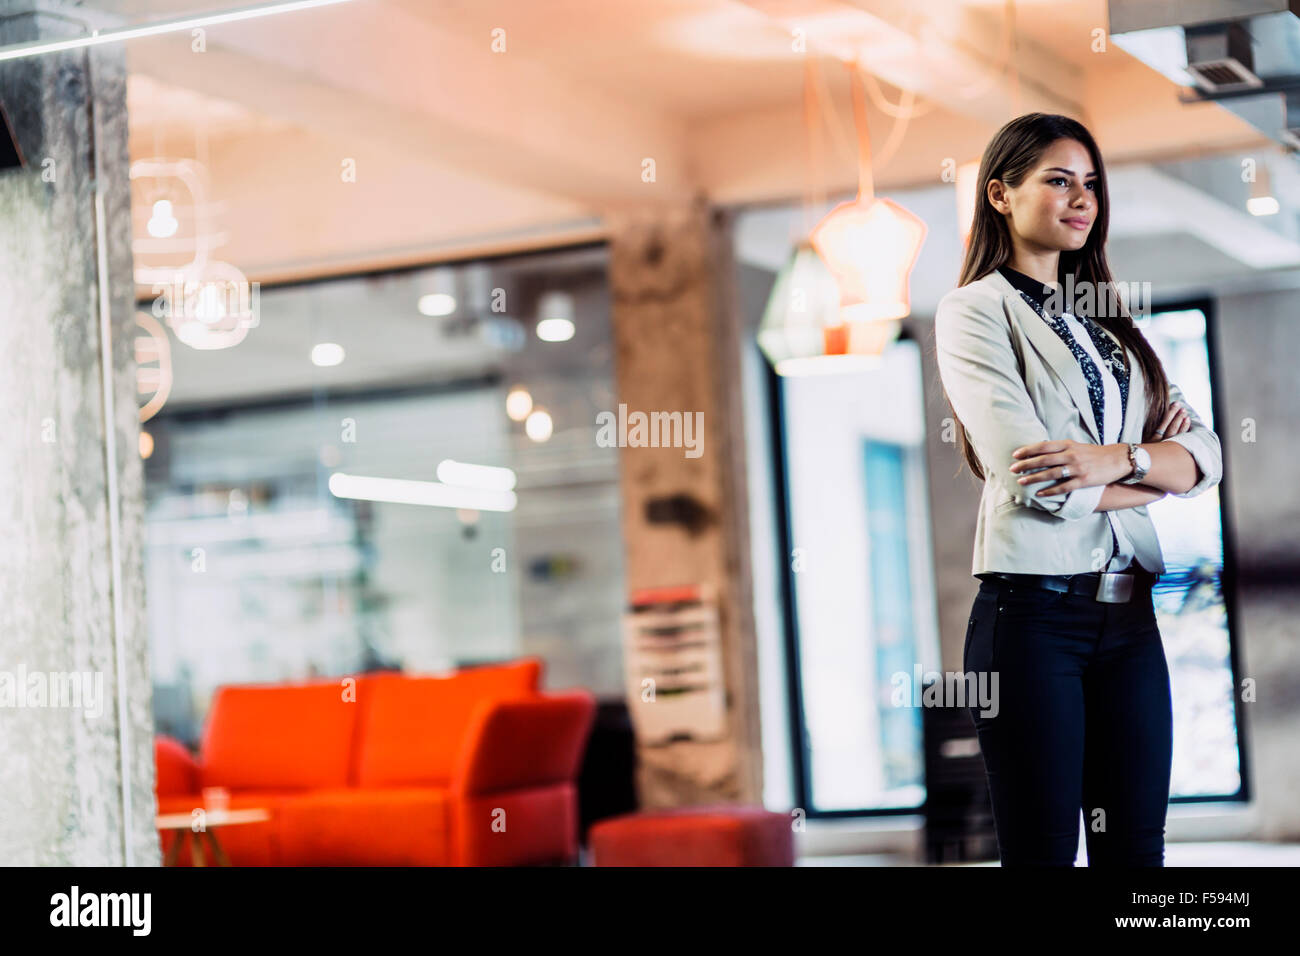 Confident businesswoman standing in office avec les mains croisées Photo Stock